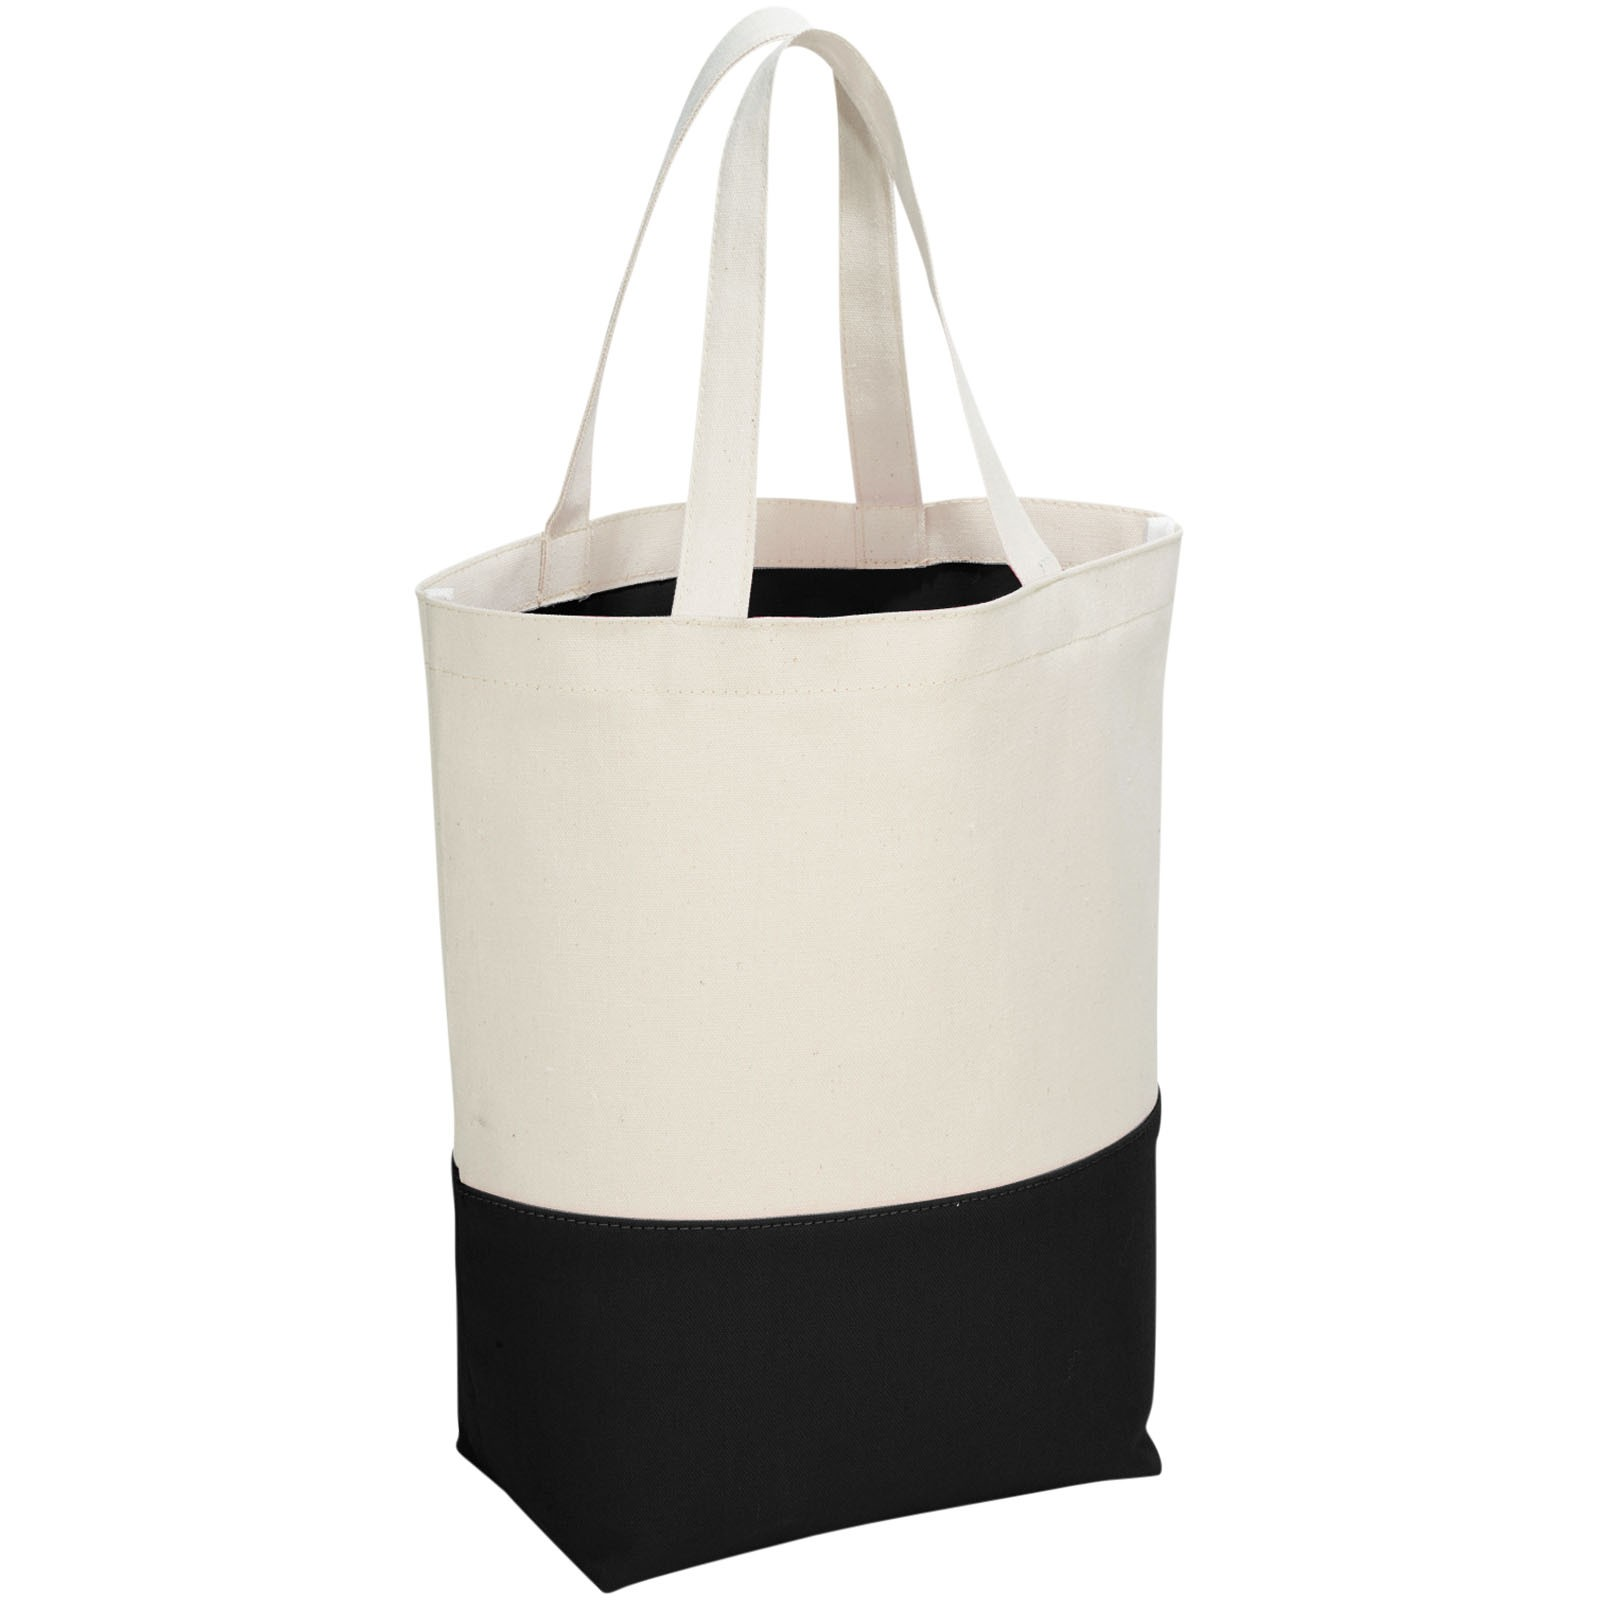 Colour-pop 280 g/m² cotton tote bag - Natural / Solid black